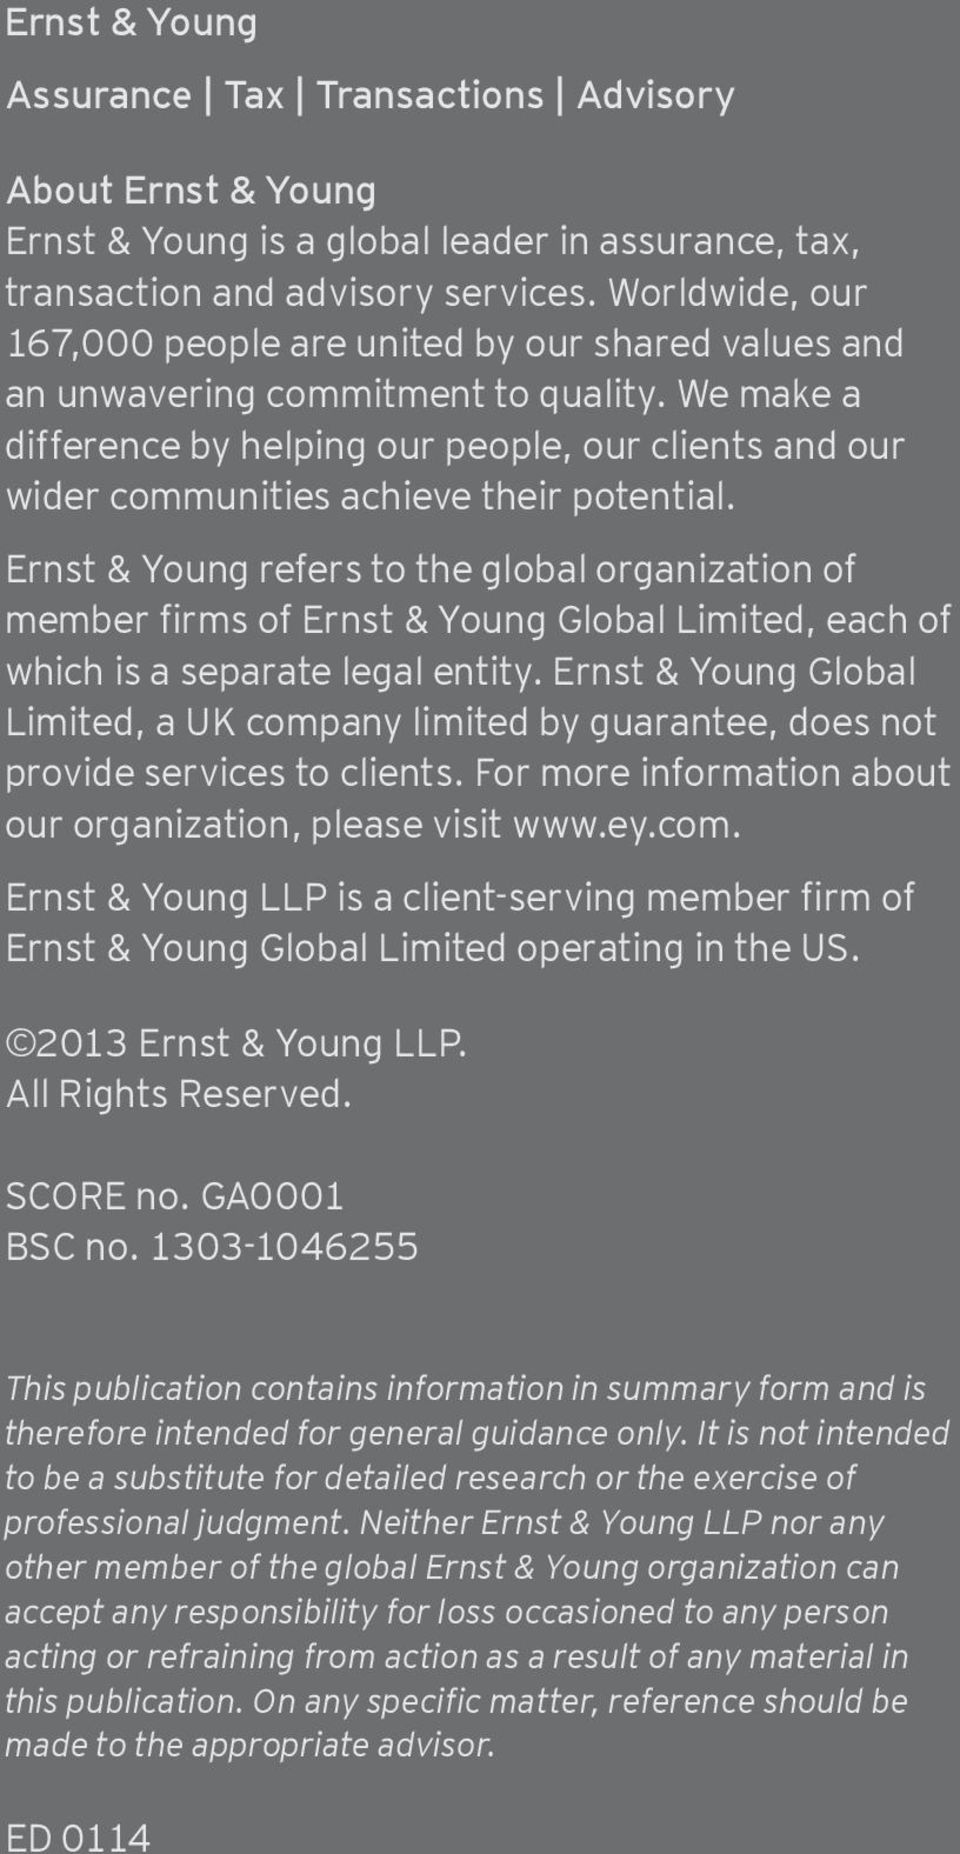 We make a difference by helping our people, our clients and our wider communities achieve their potential. Ernst & Young refers to the global organization of which is a separate legal entity.